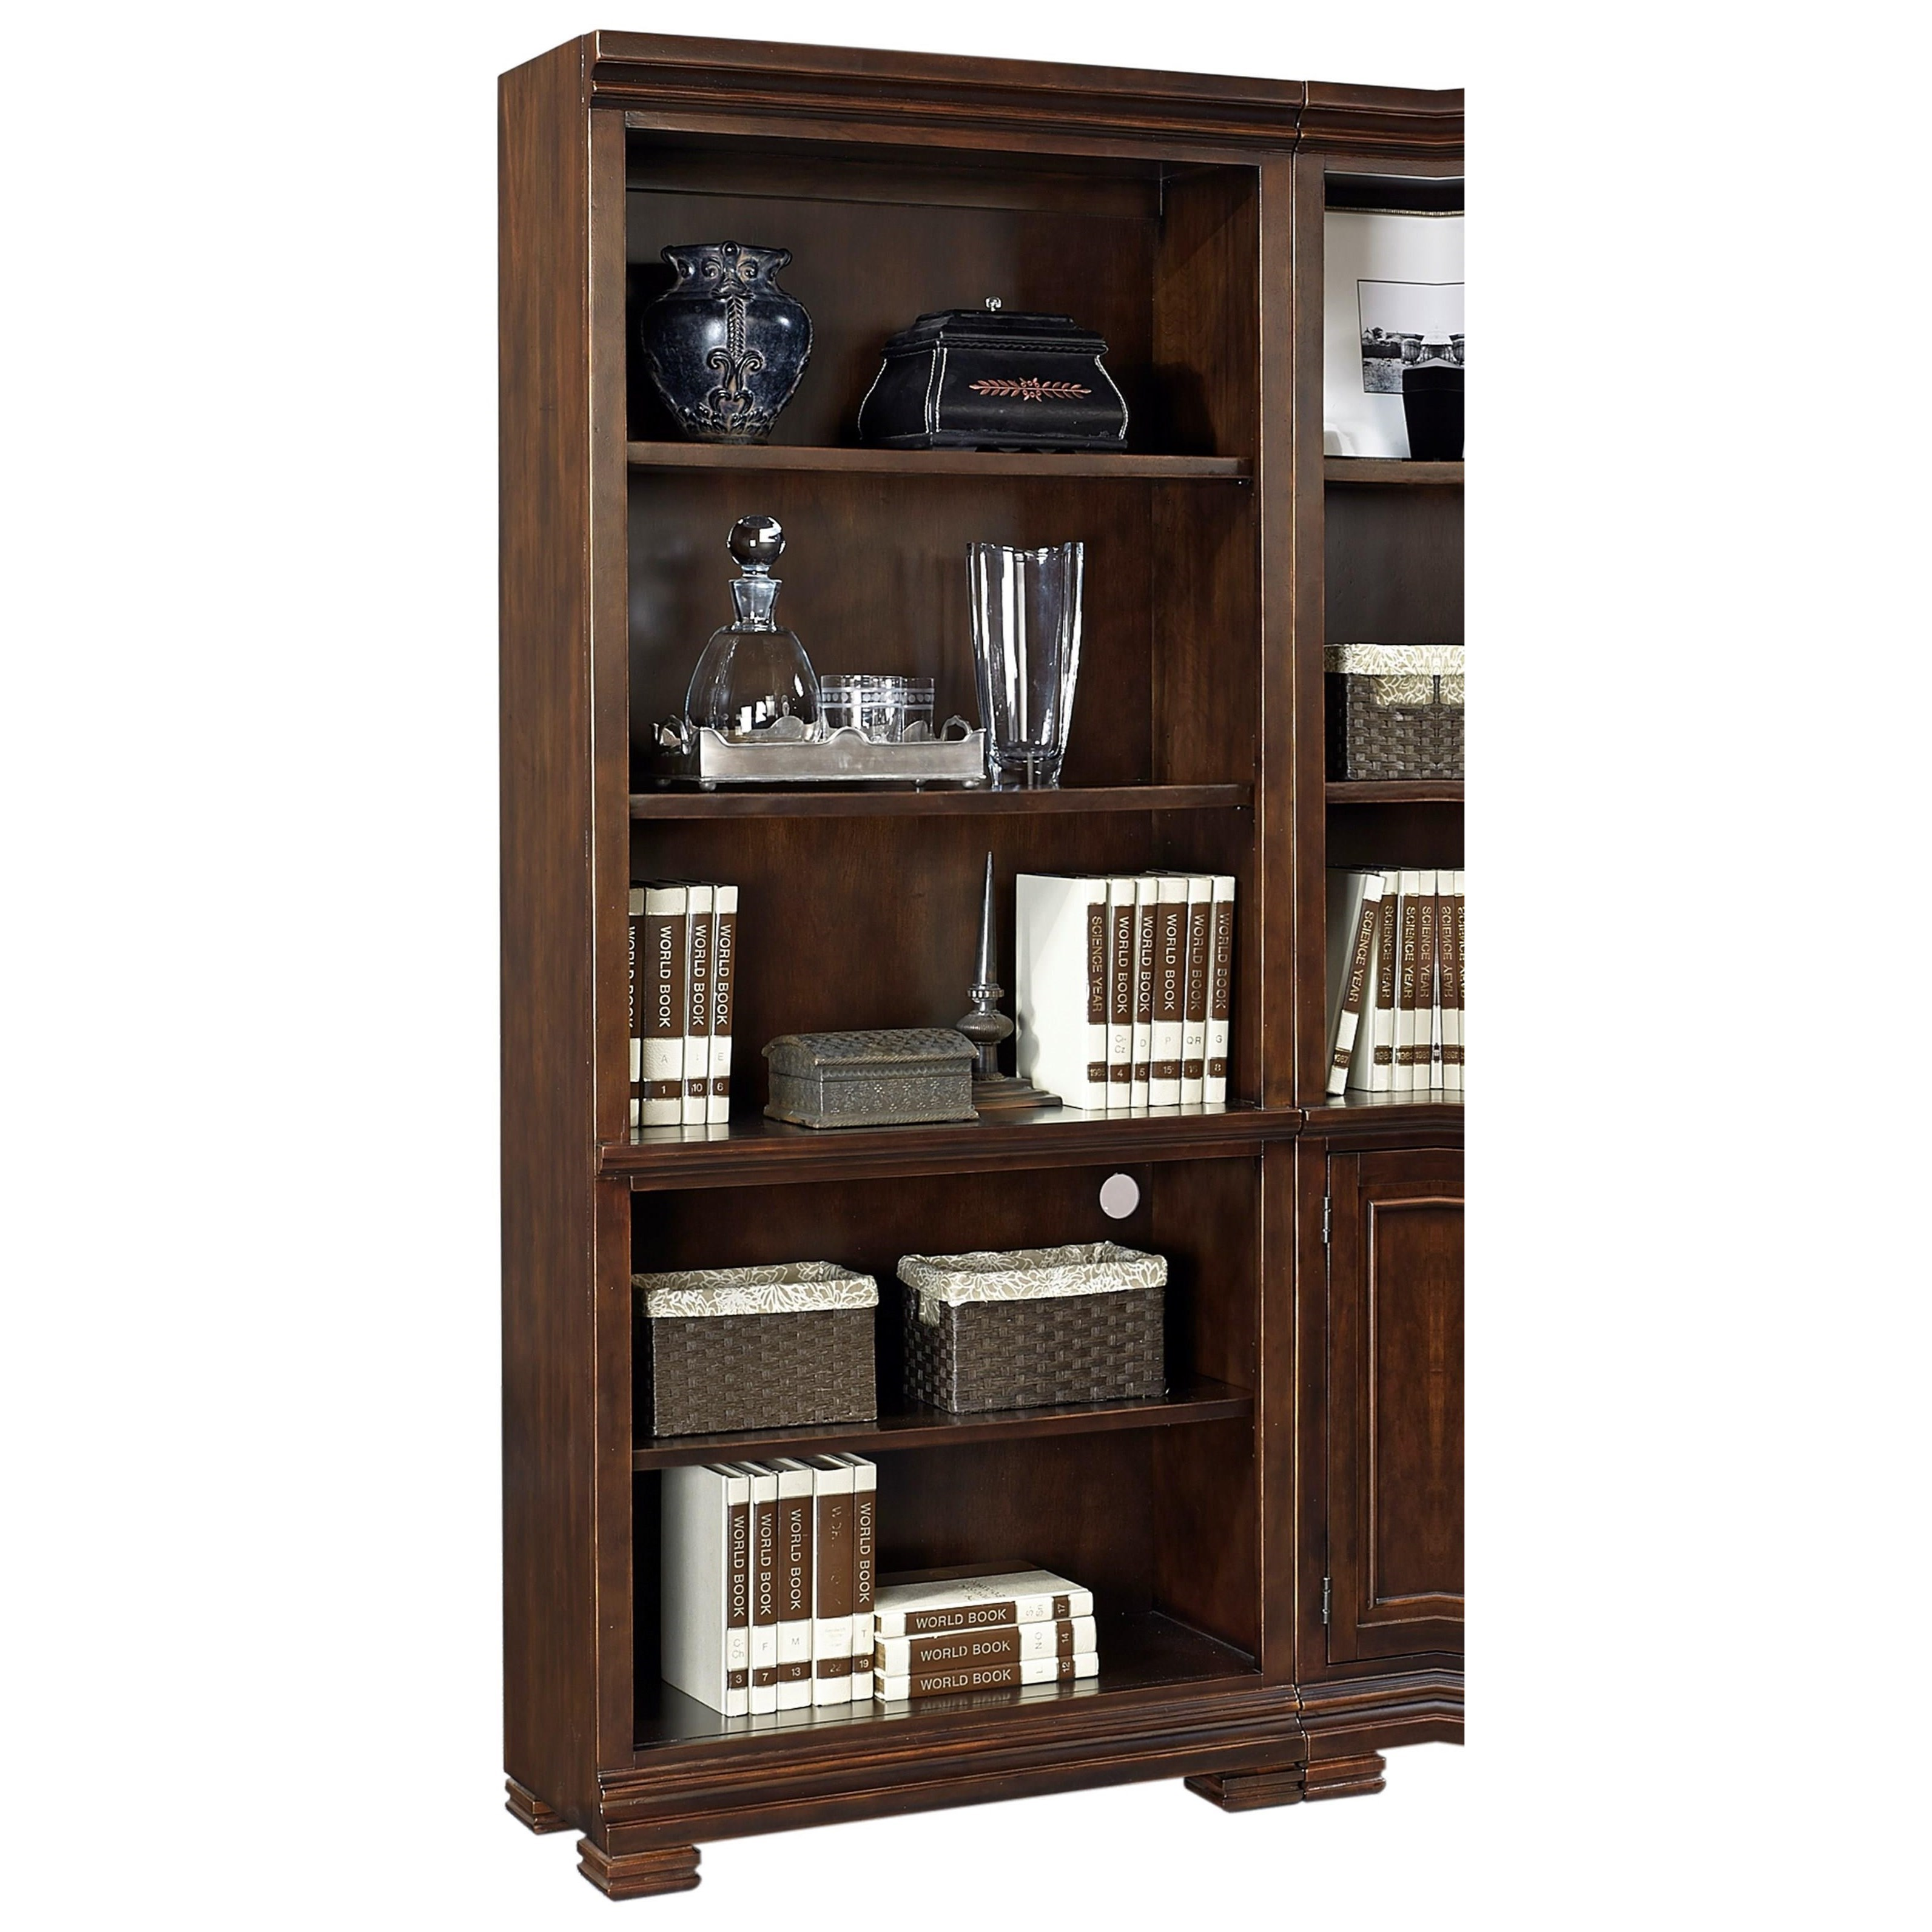 Weston Open Bookcase  by Aspenhome at Walker's Furniture